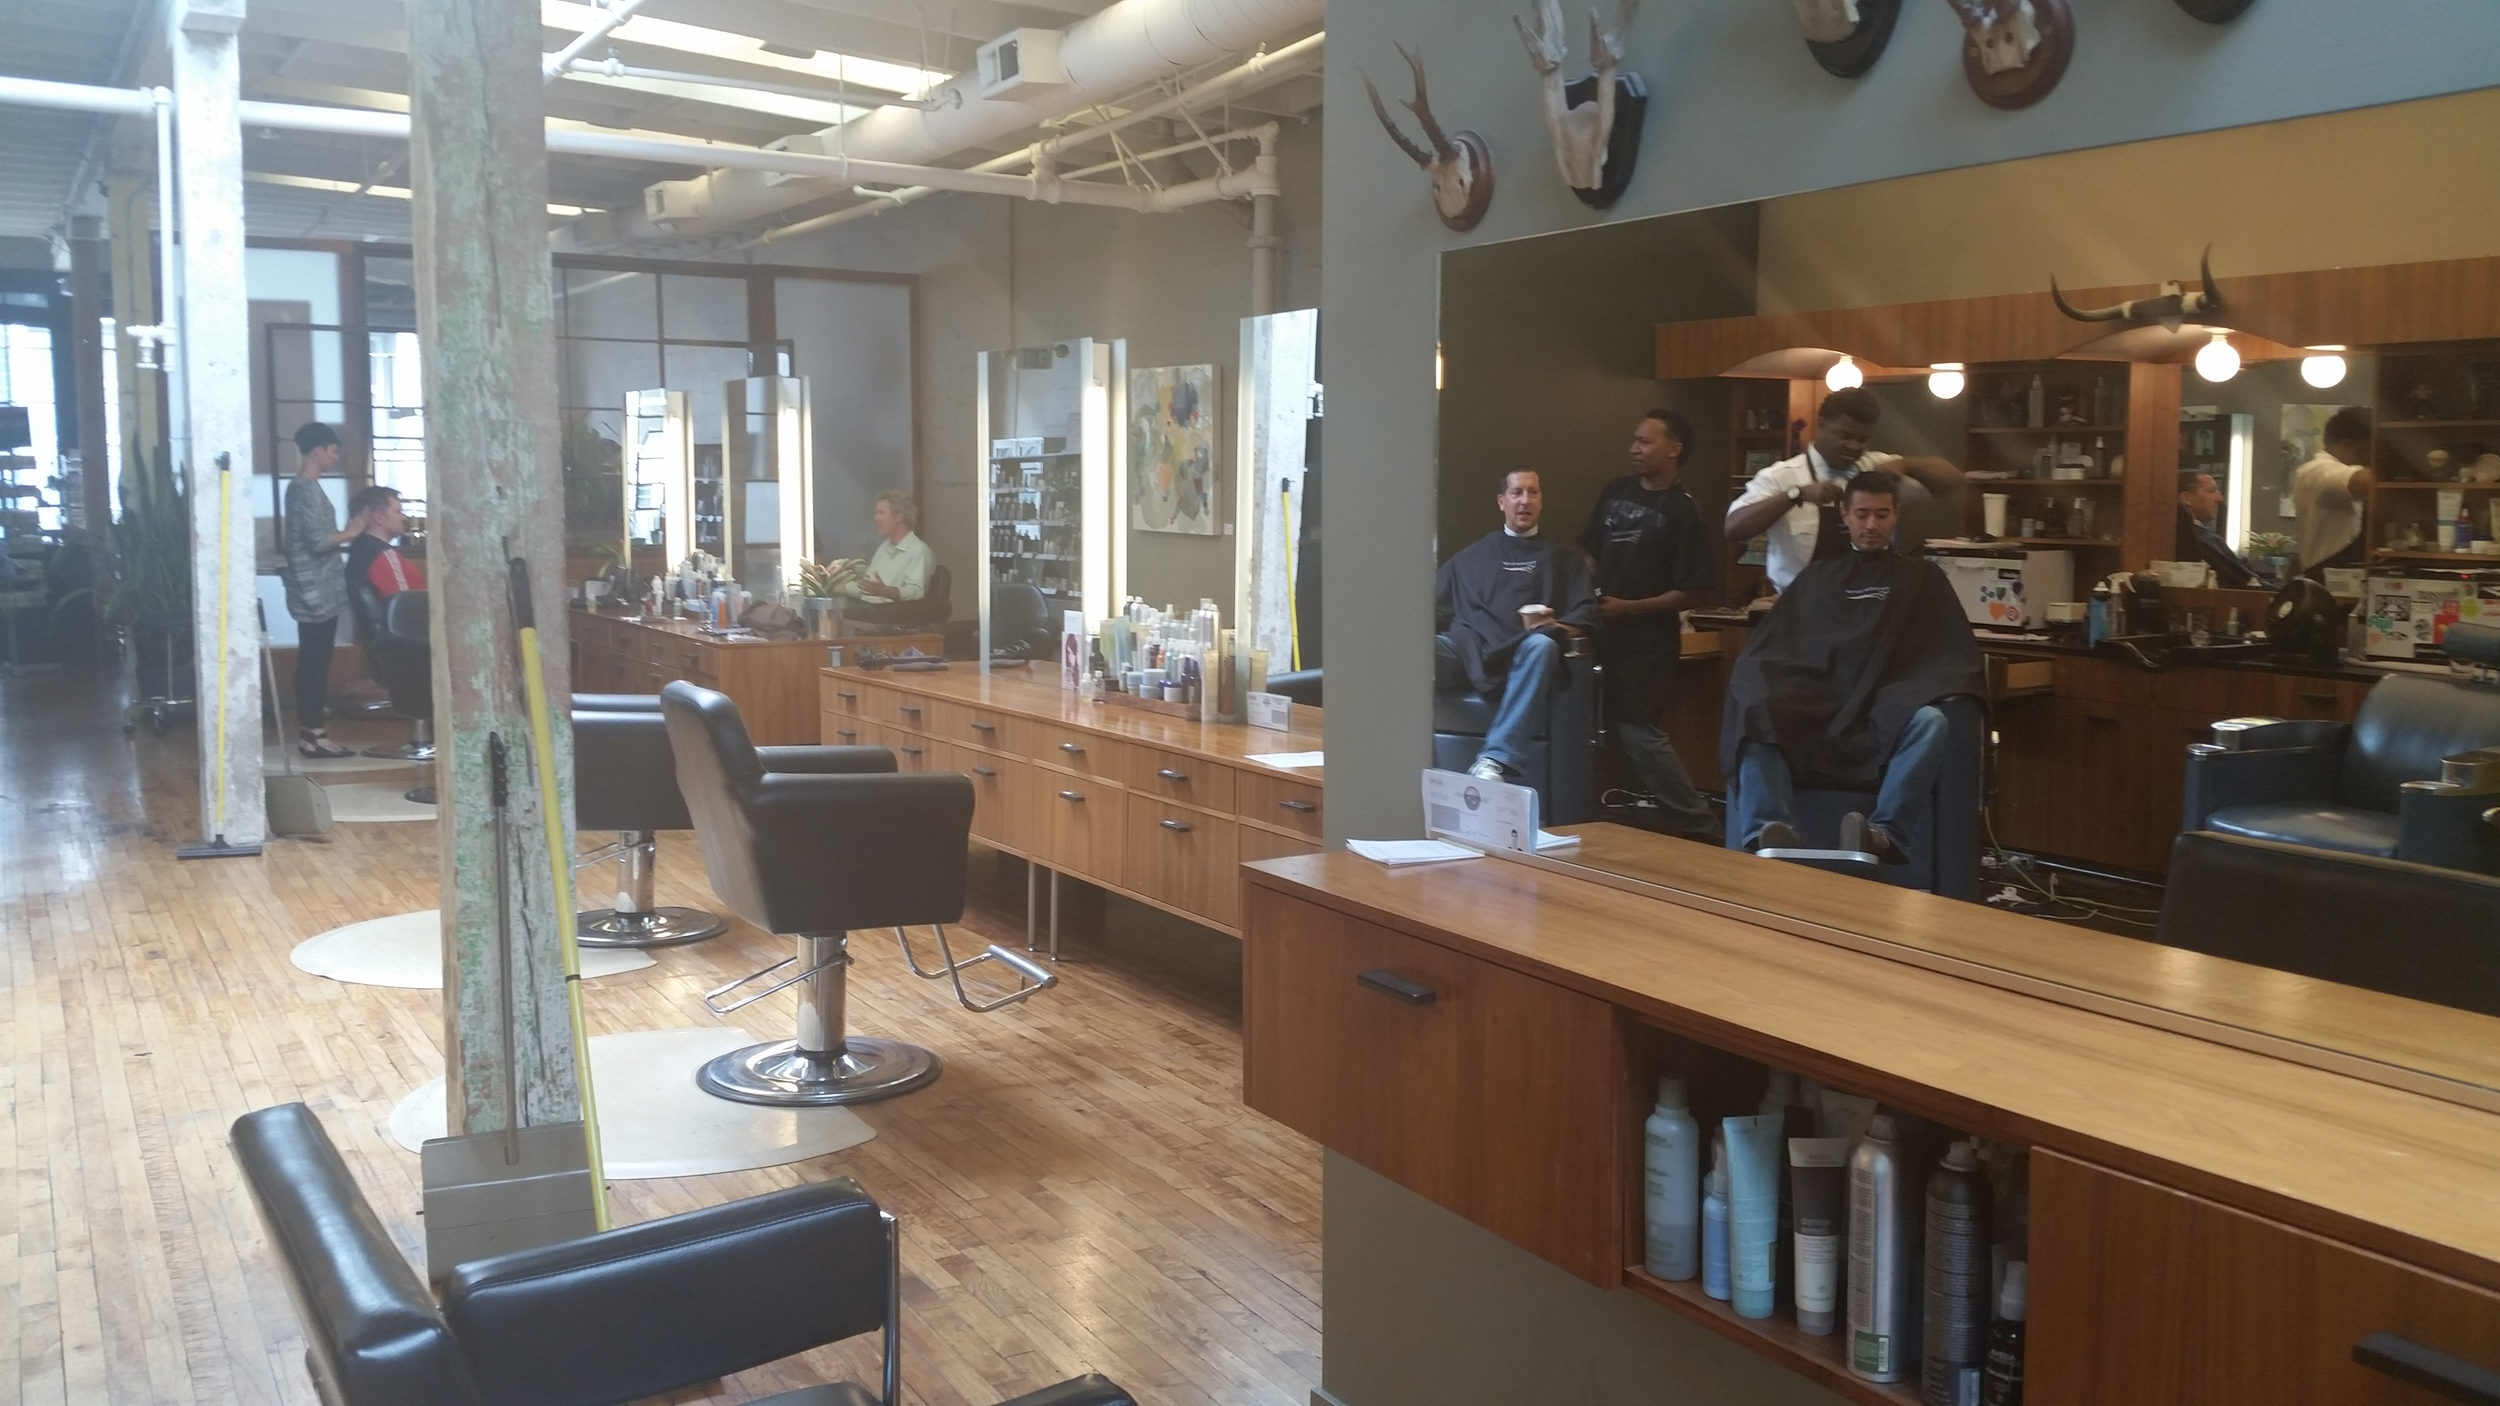 The Barber Lounge located on Folsom Street, San Francisco.